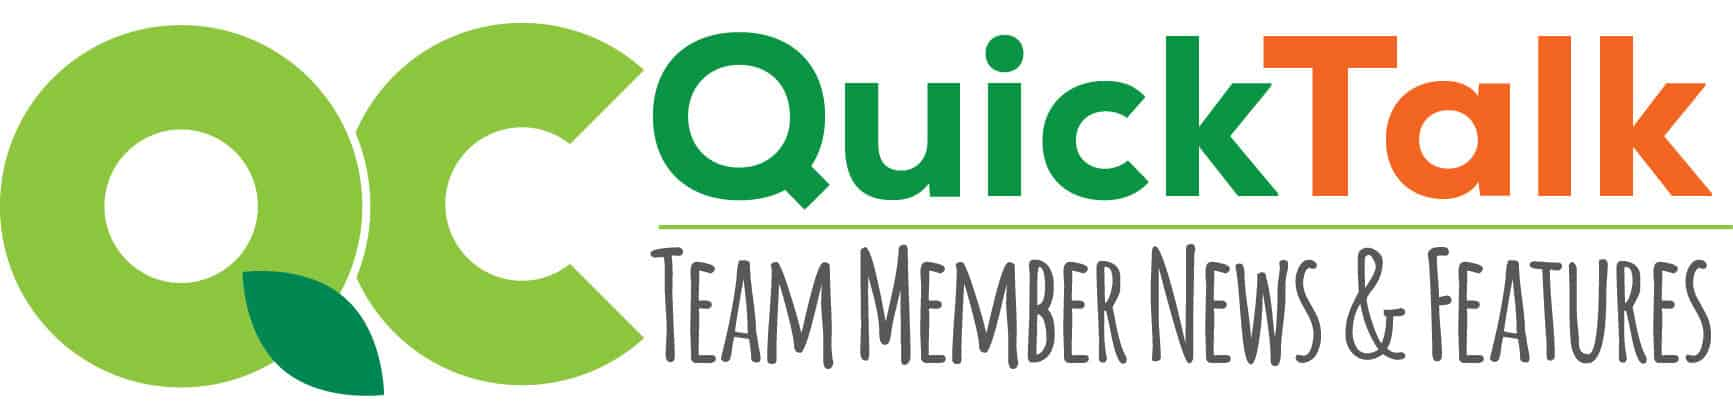 QuickTalk Team Member News